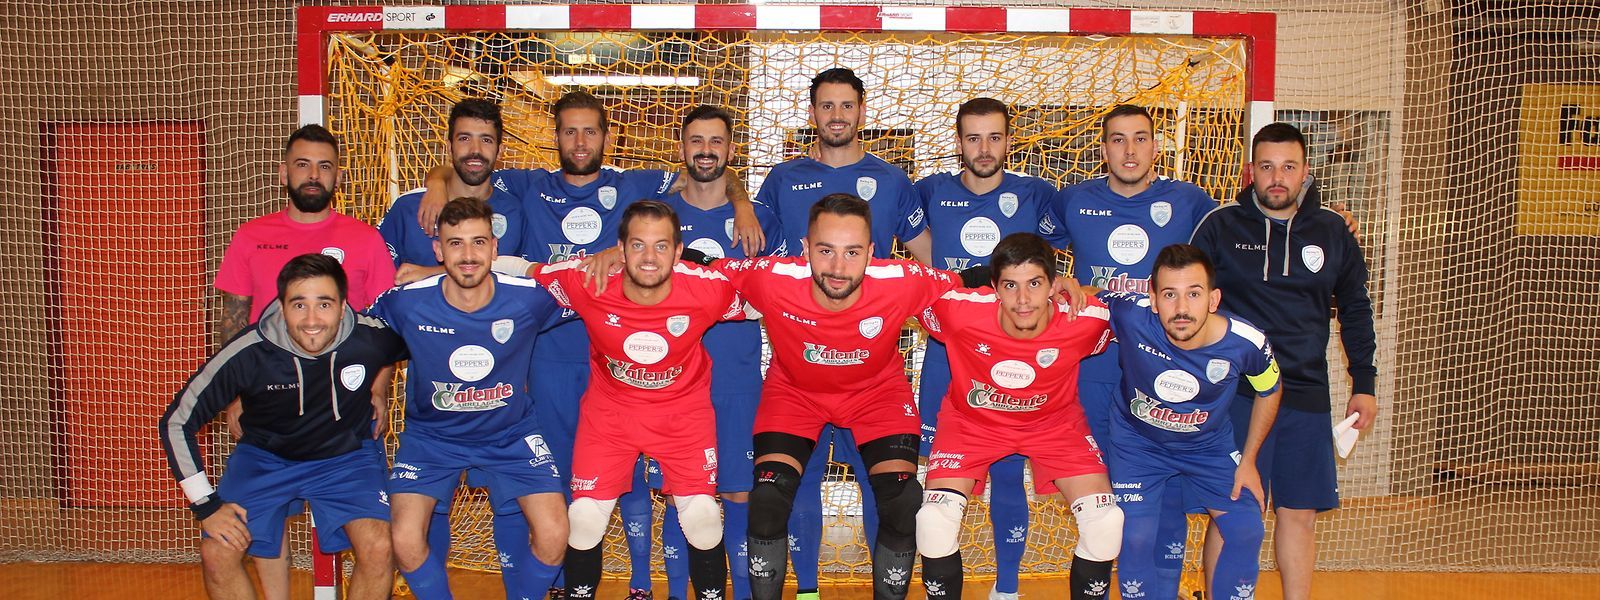 2baea8638b Racing Luxembourg  Campeão quer confirmar